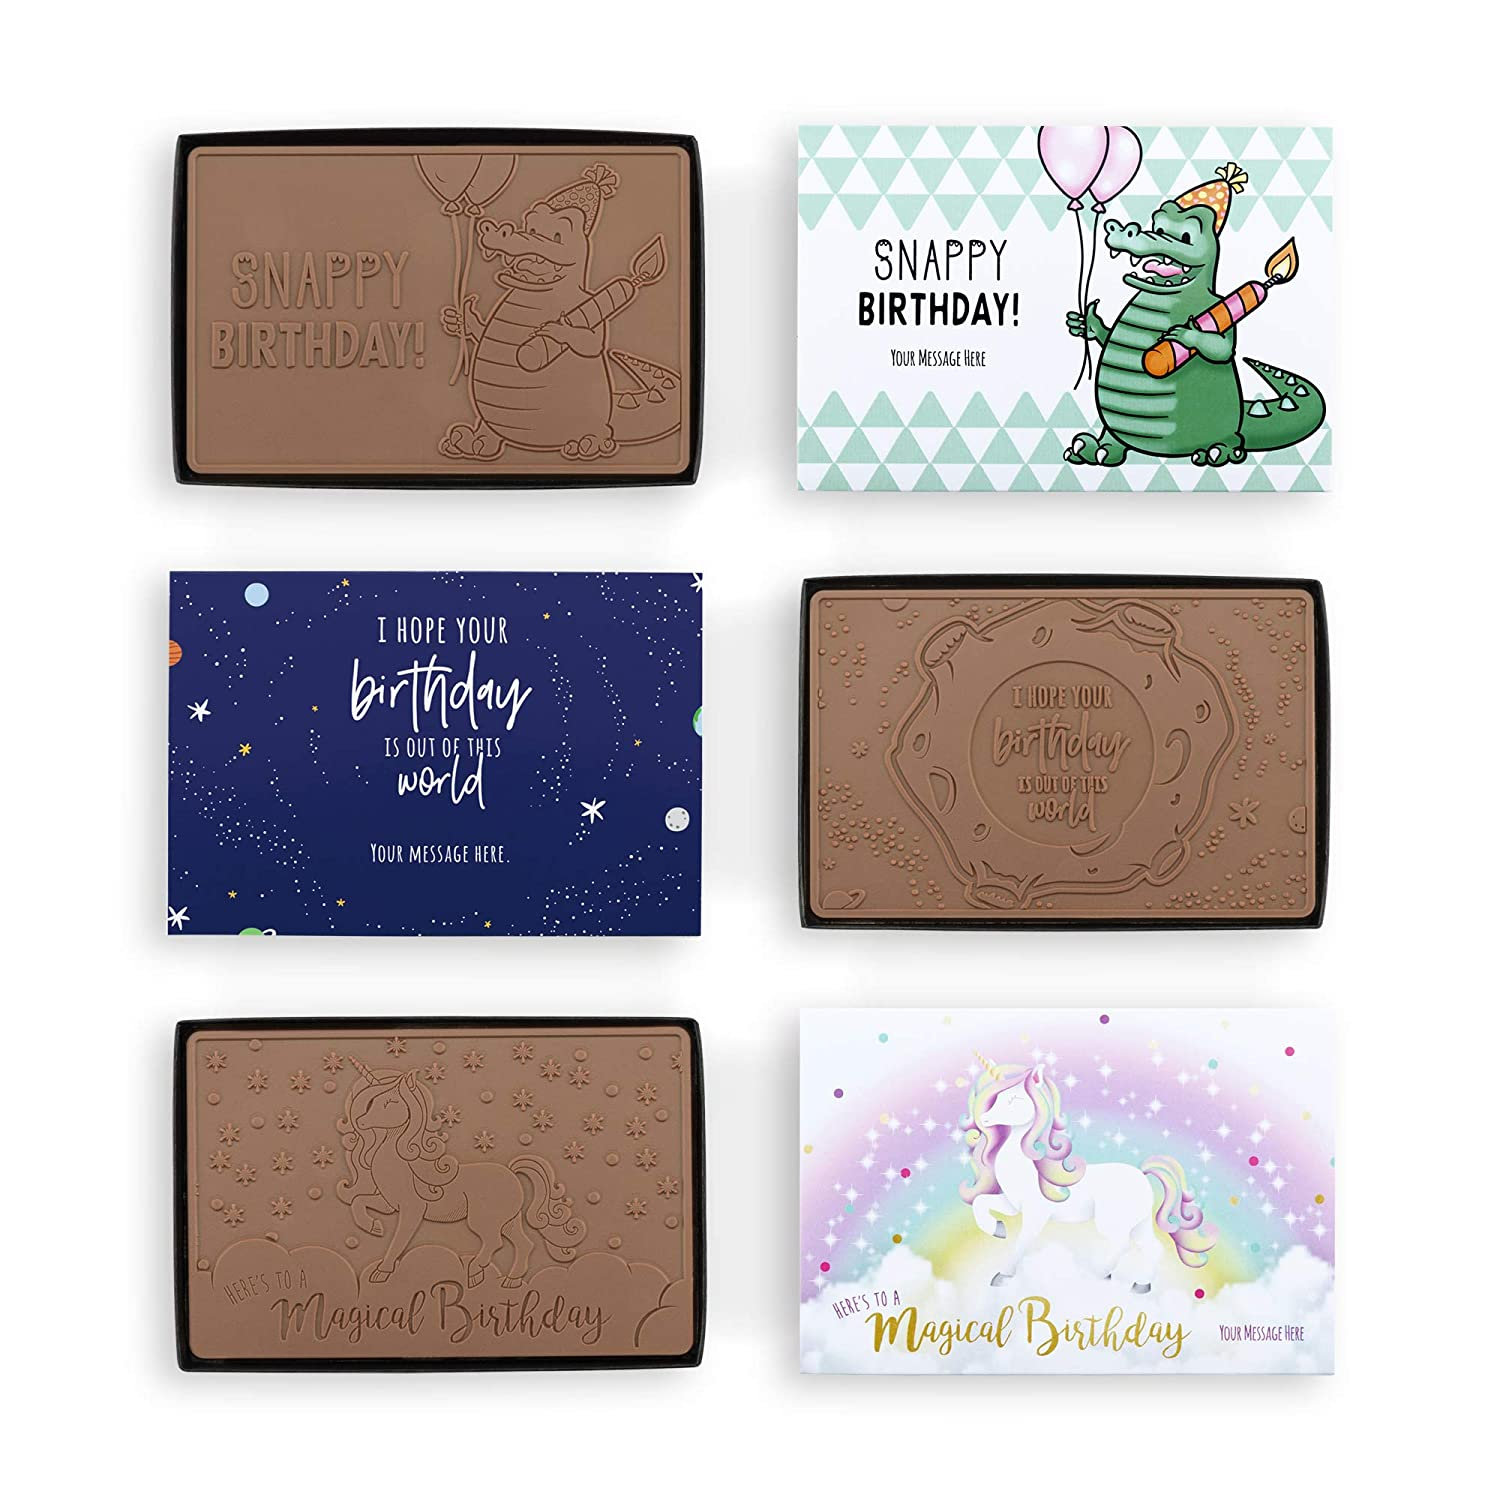 Totally Chocolate Max 45% OFF Happy Birthday 4x6 Party Cho Belgian El Paso Mall 6 Pack of